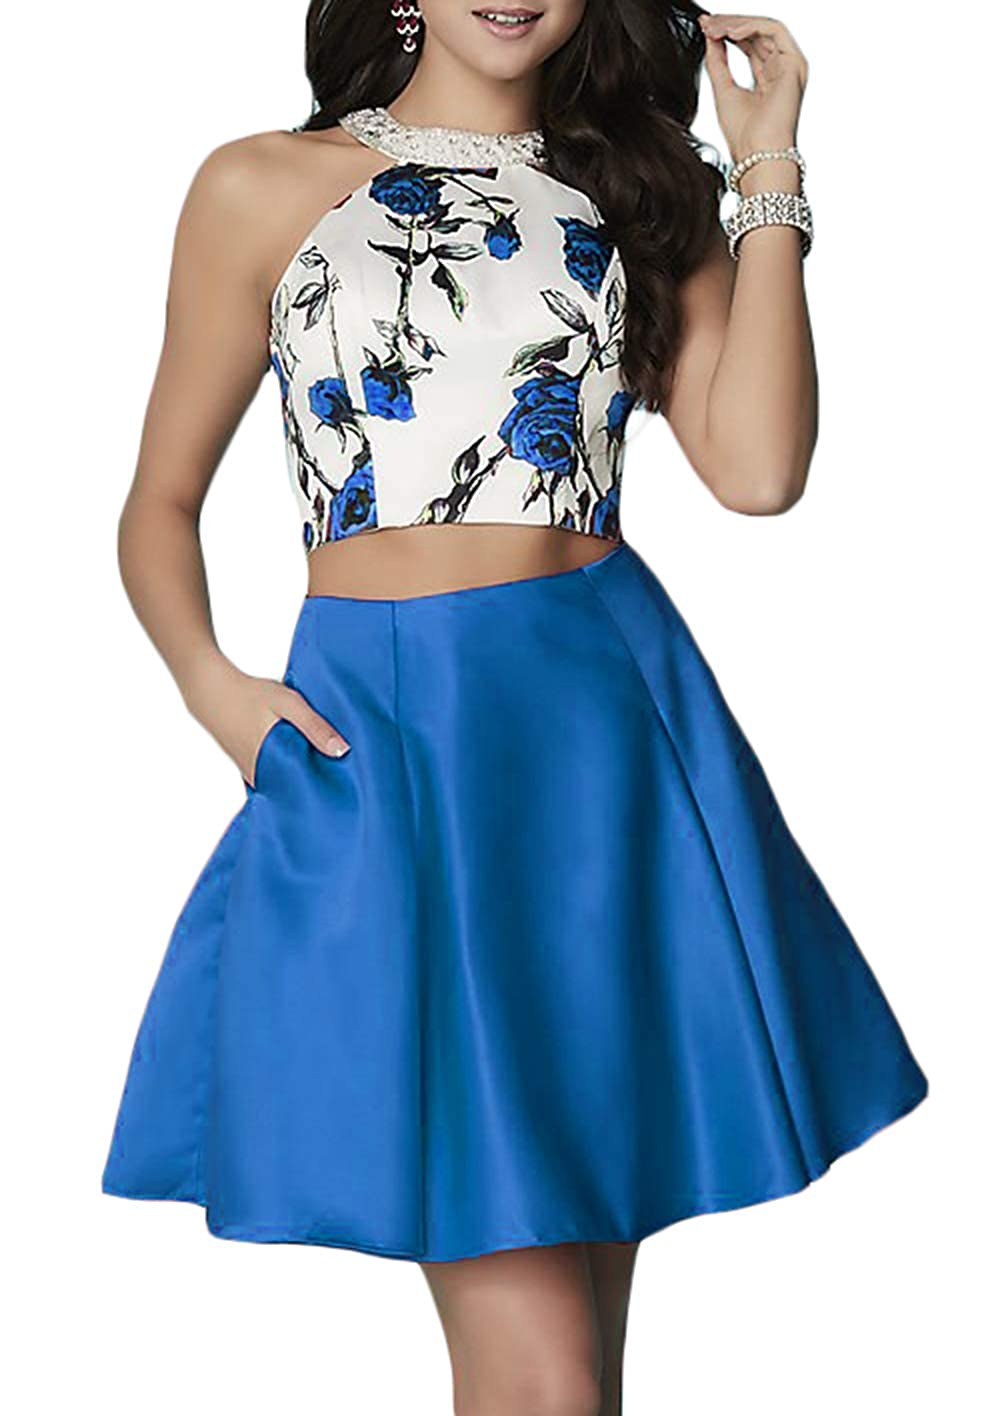 bluee Ri Yun Floral Print Homecoming Dresses Short Two Piece 2018 Halter Beaded Backless Prom Dresses with Pockets